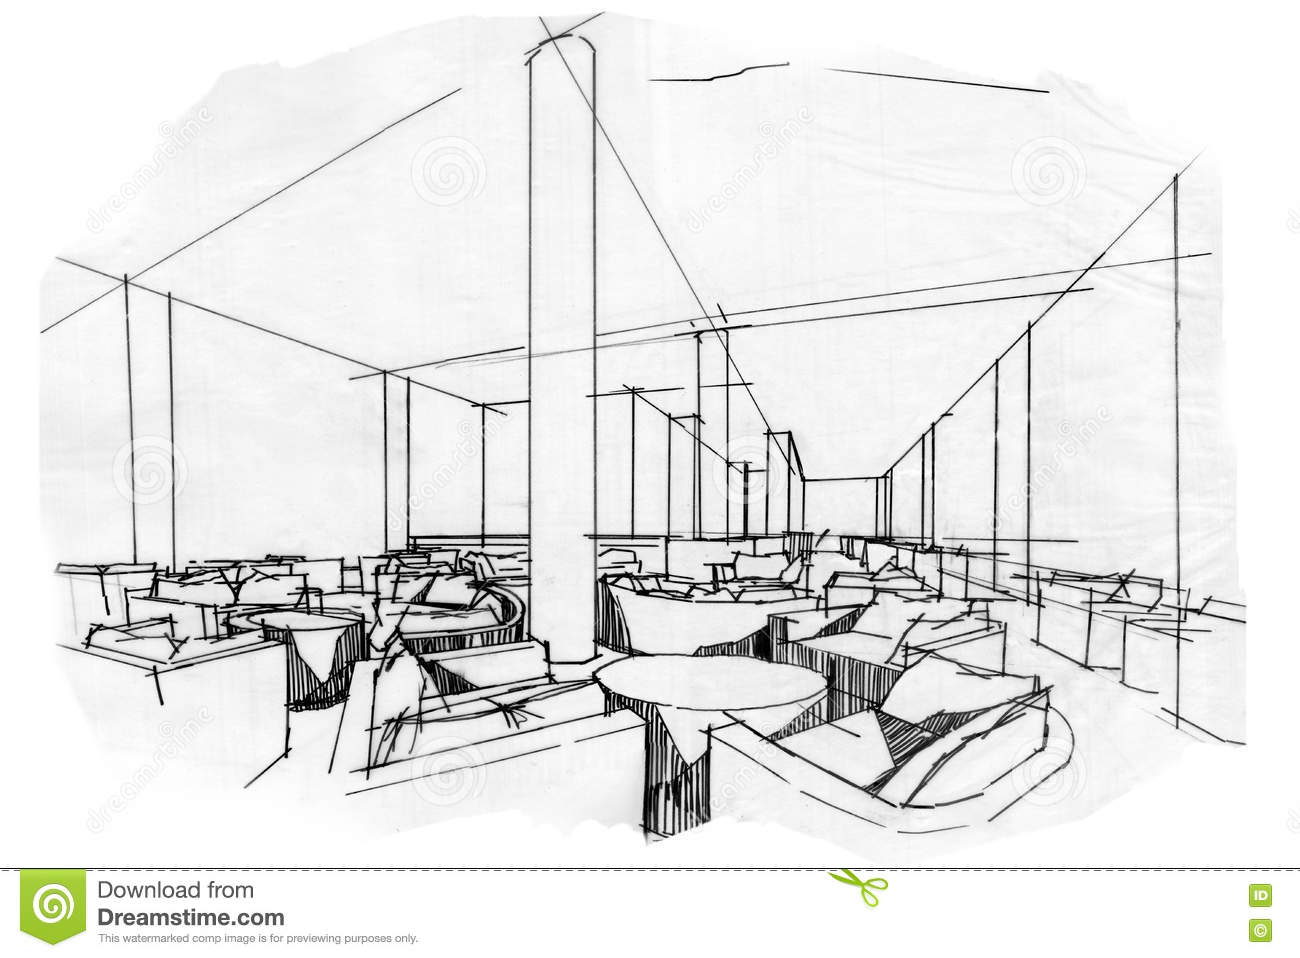 royalty free illustration download sketch perspective interior